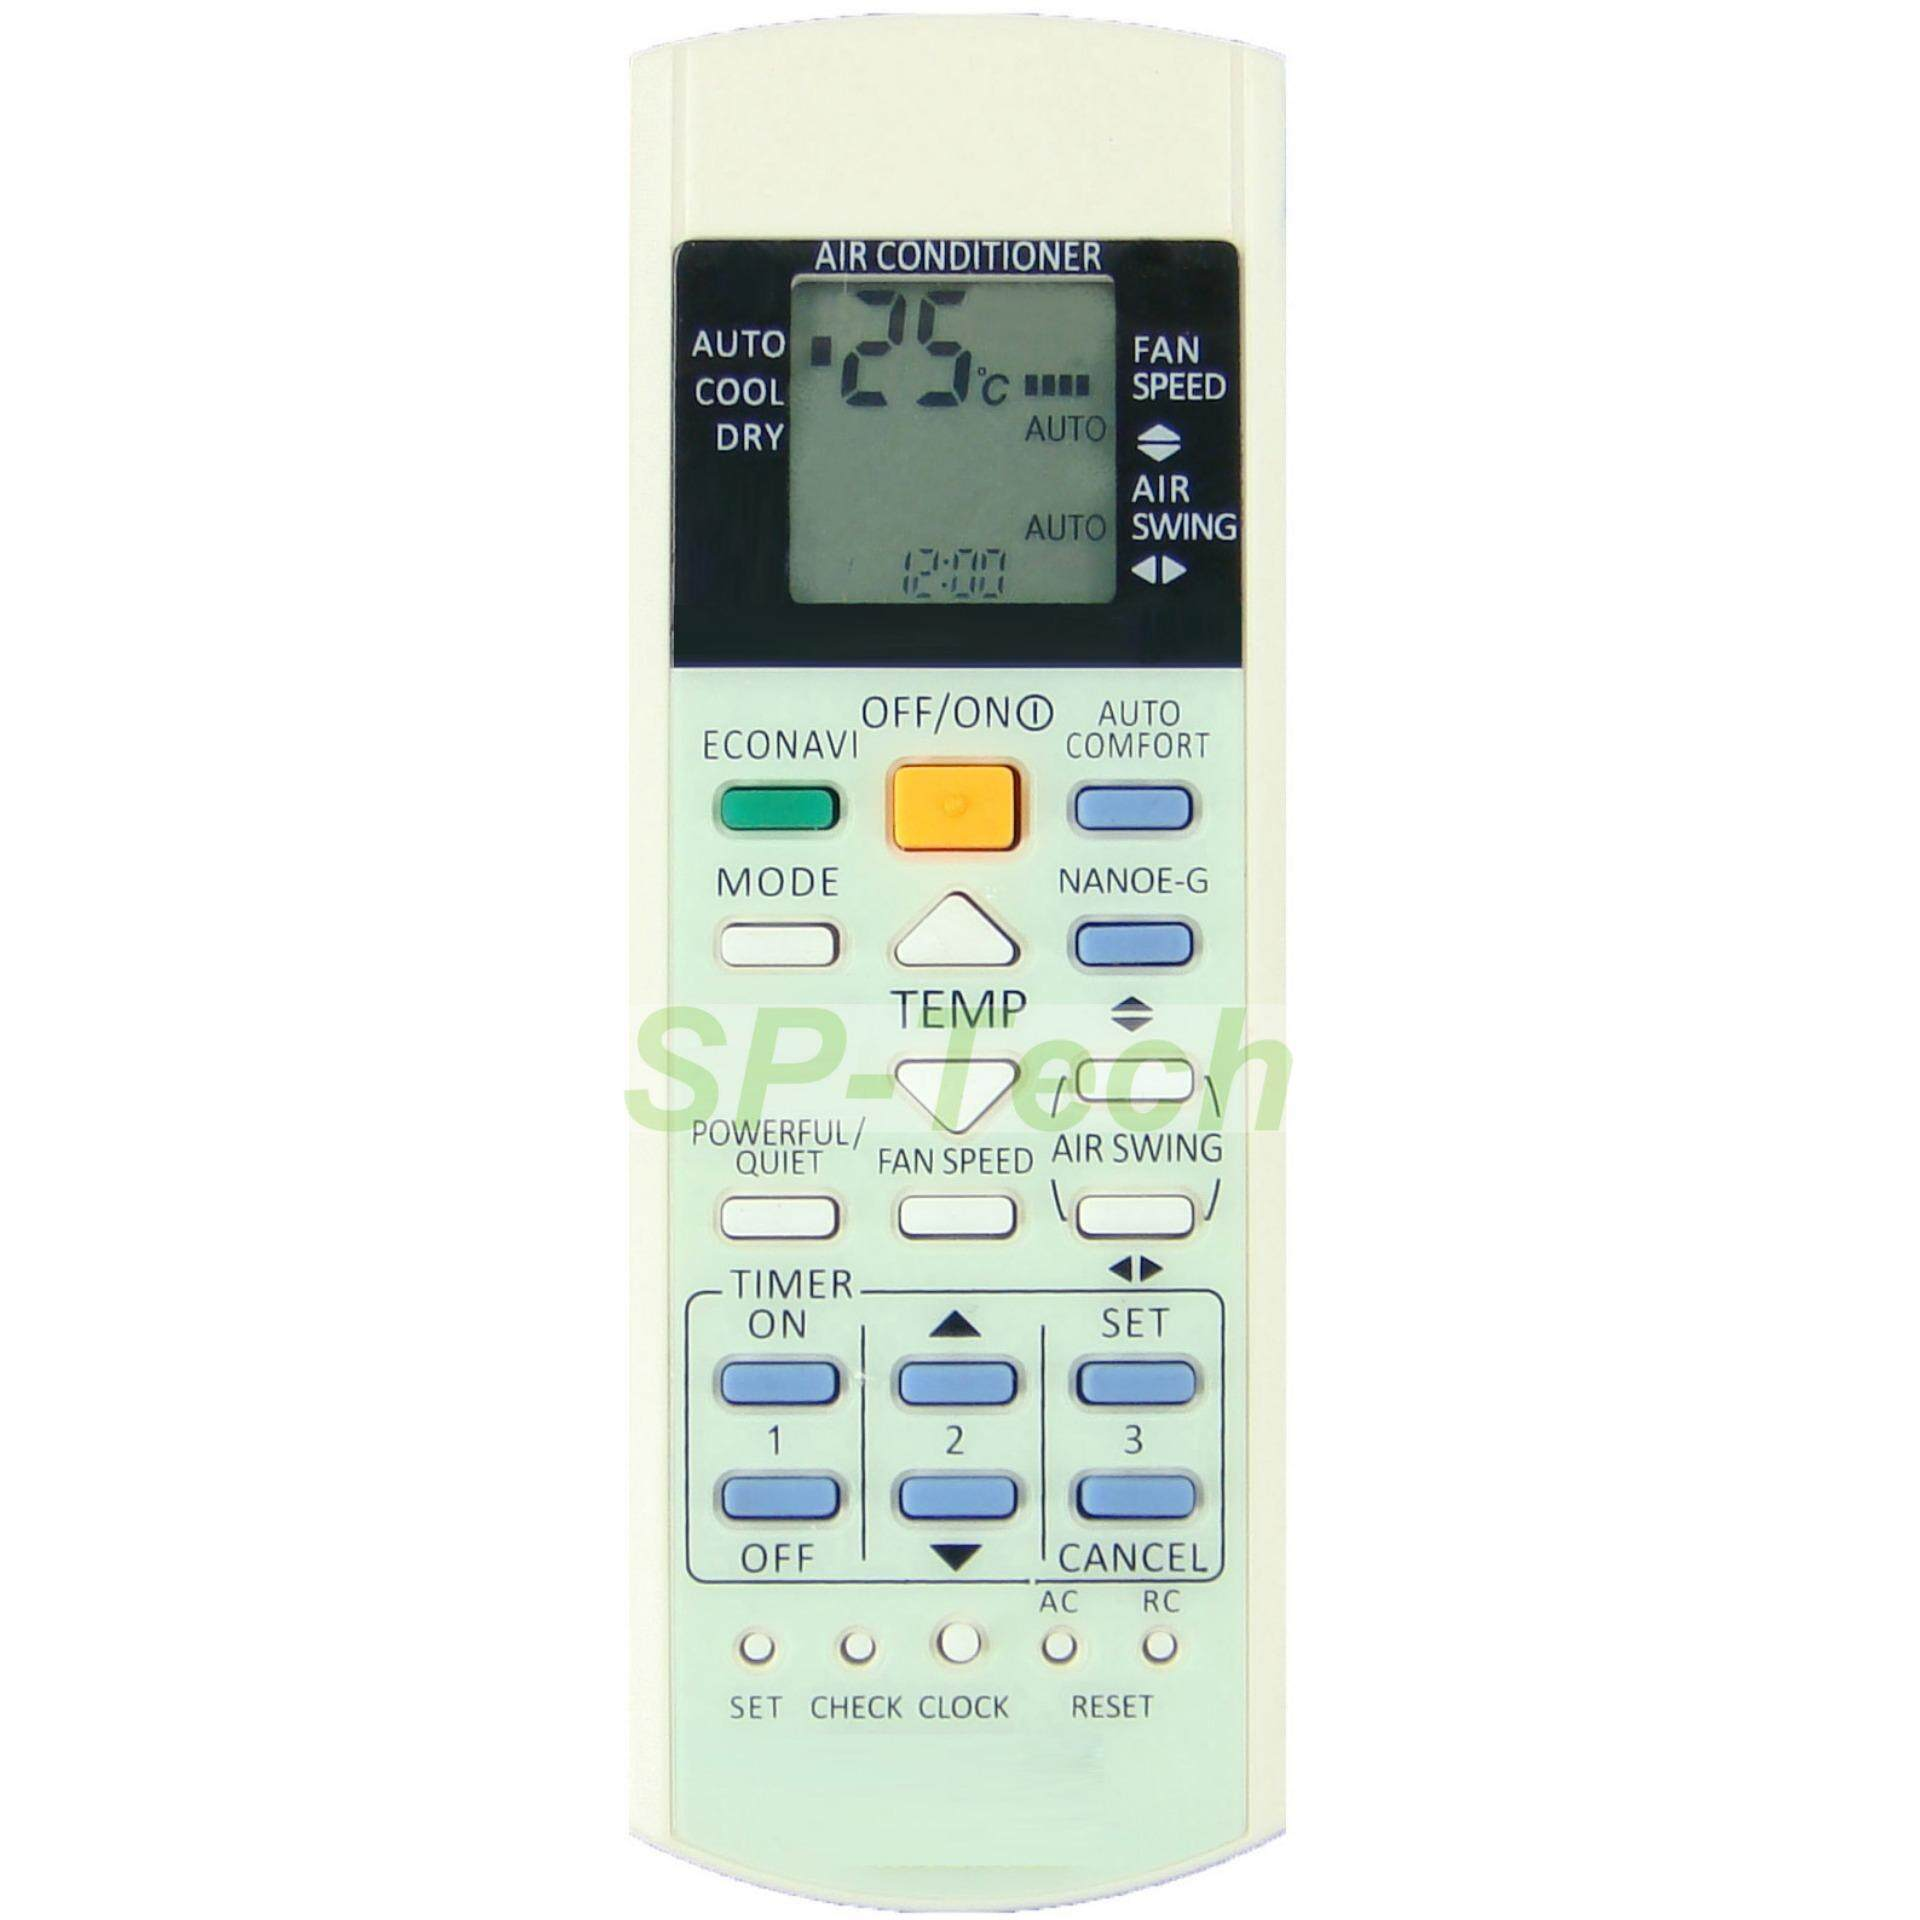 A75C3706 PANASONIC AIR CONDITIONING REMOTE CONTROL - (BUY 2 FREE 1)